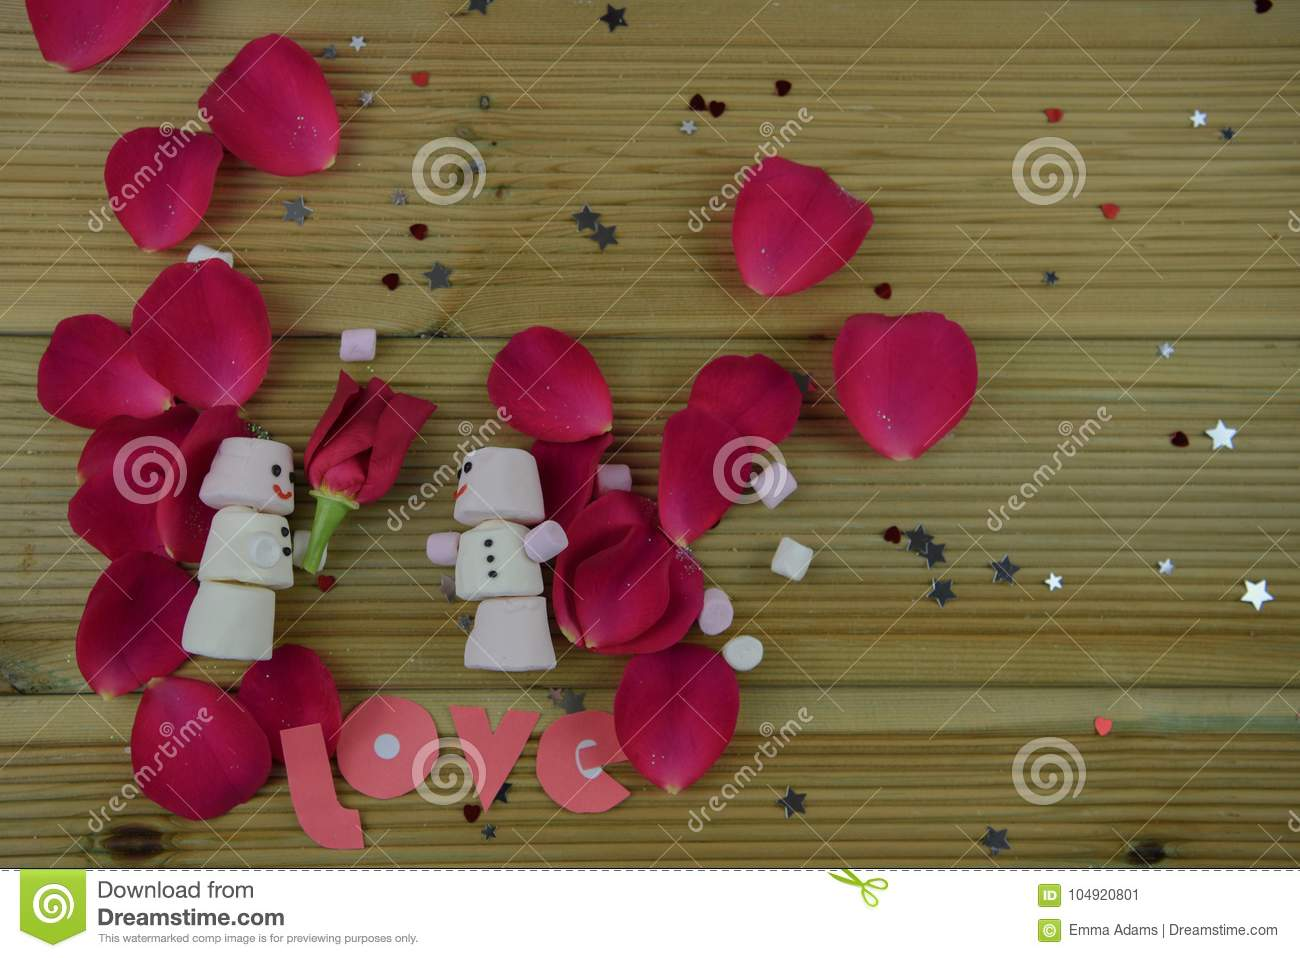 Romantic winter season photography image with marshmallows shaped as snowman with smiles iced on and holding a red rose flower